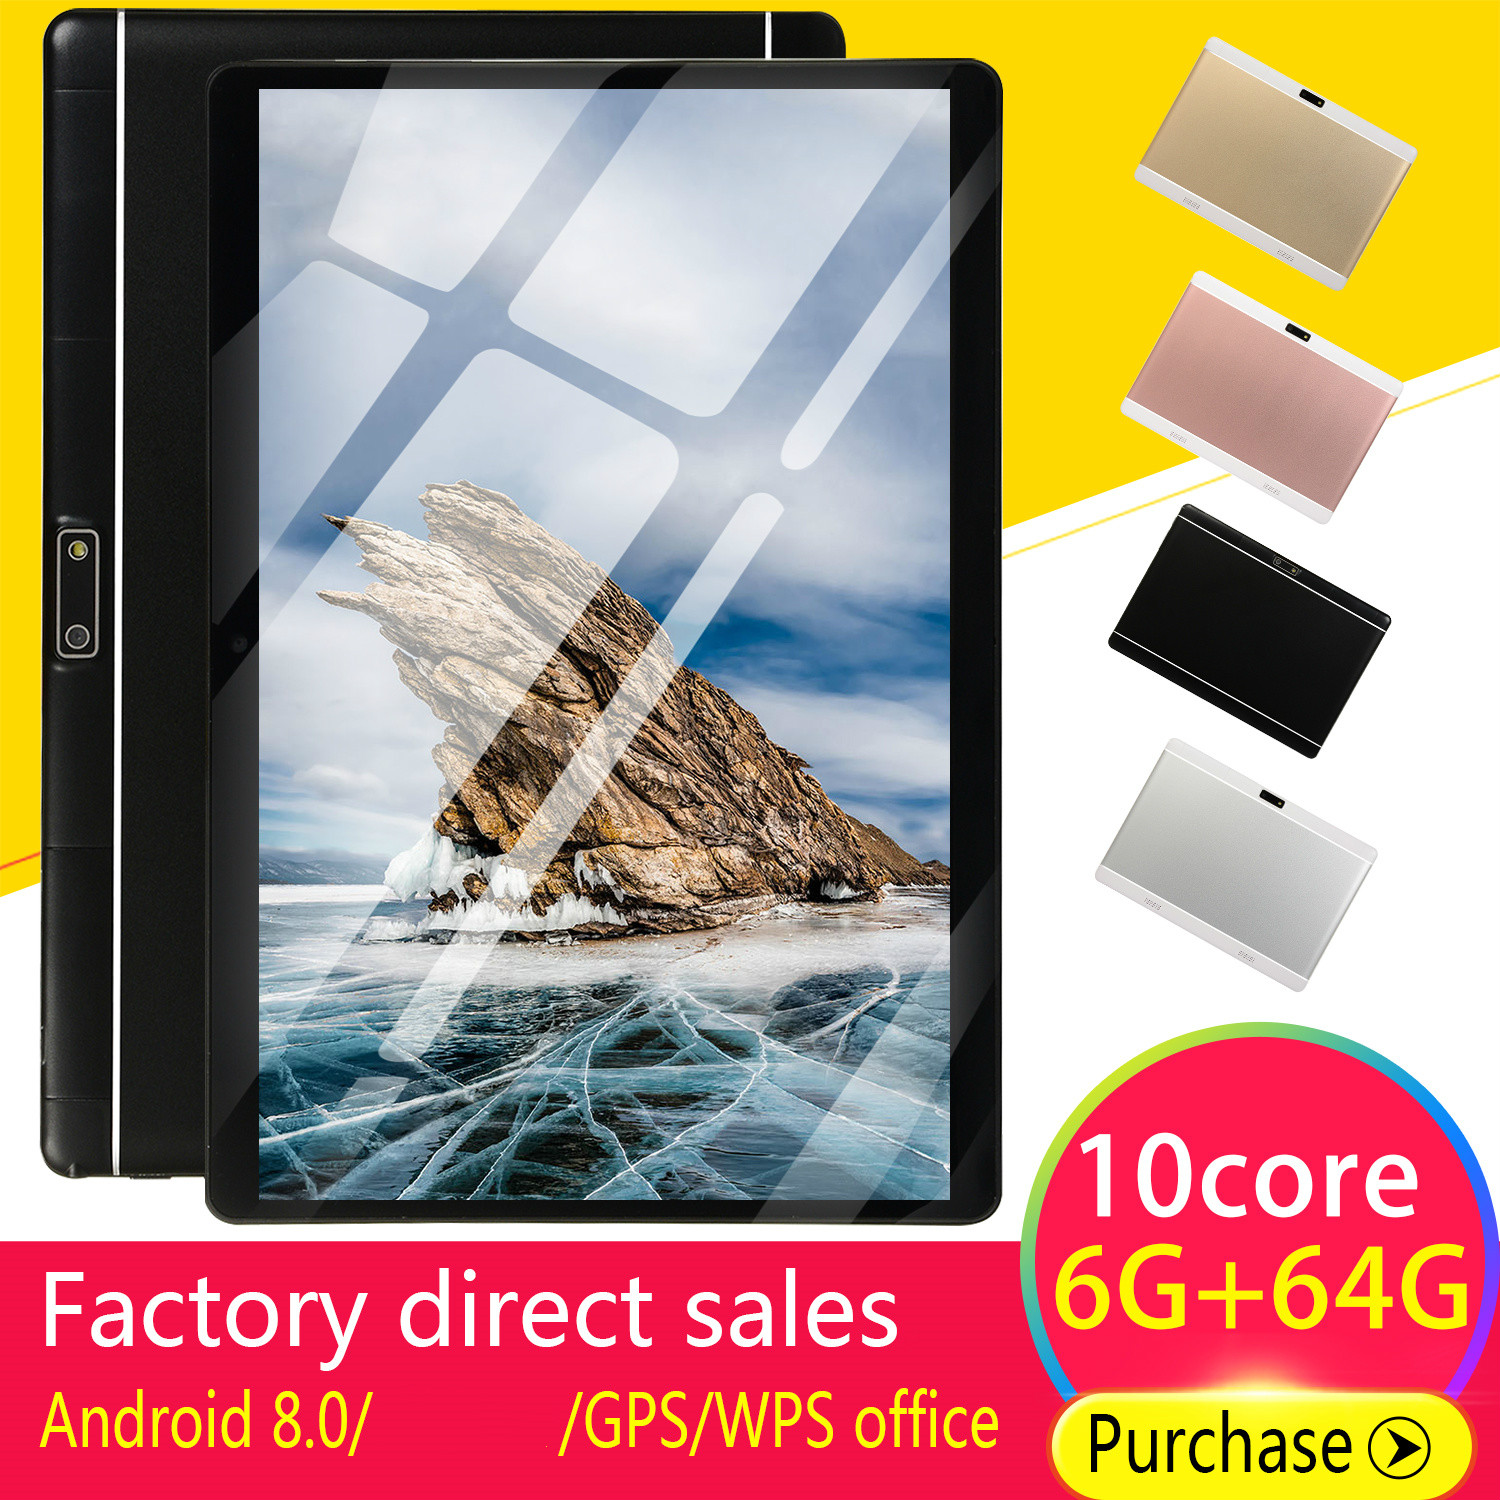 2019 WiFi Tablet PC 10 Inch Ten Core 4G Network Android 8.0 Arge Screen Dual SIM Dual Camera